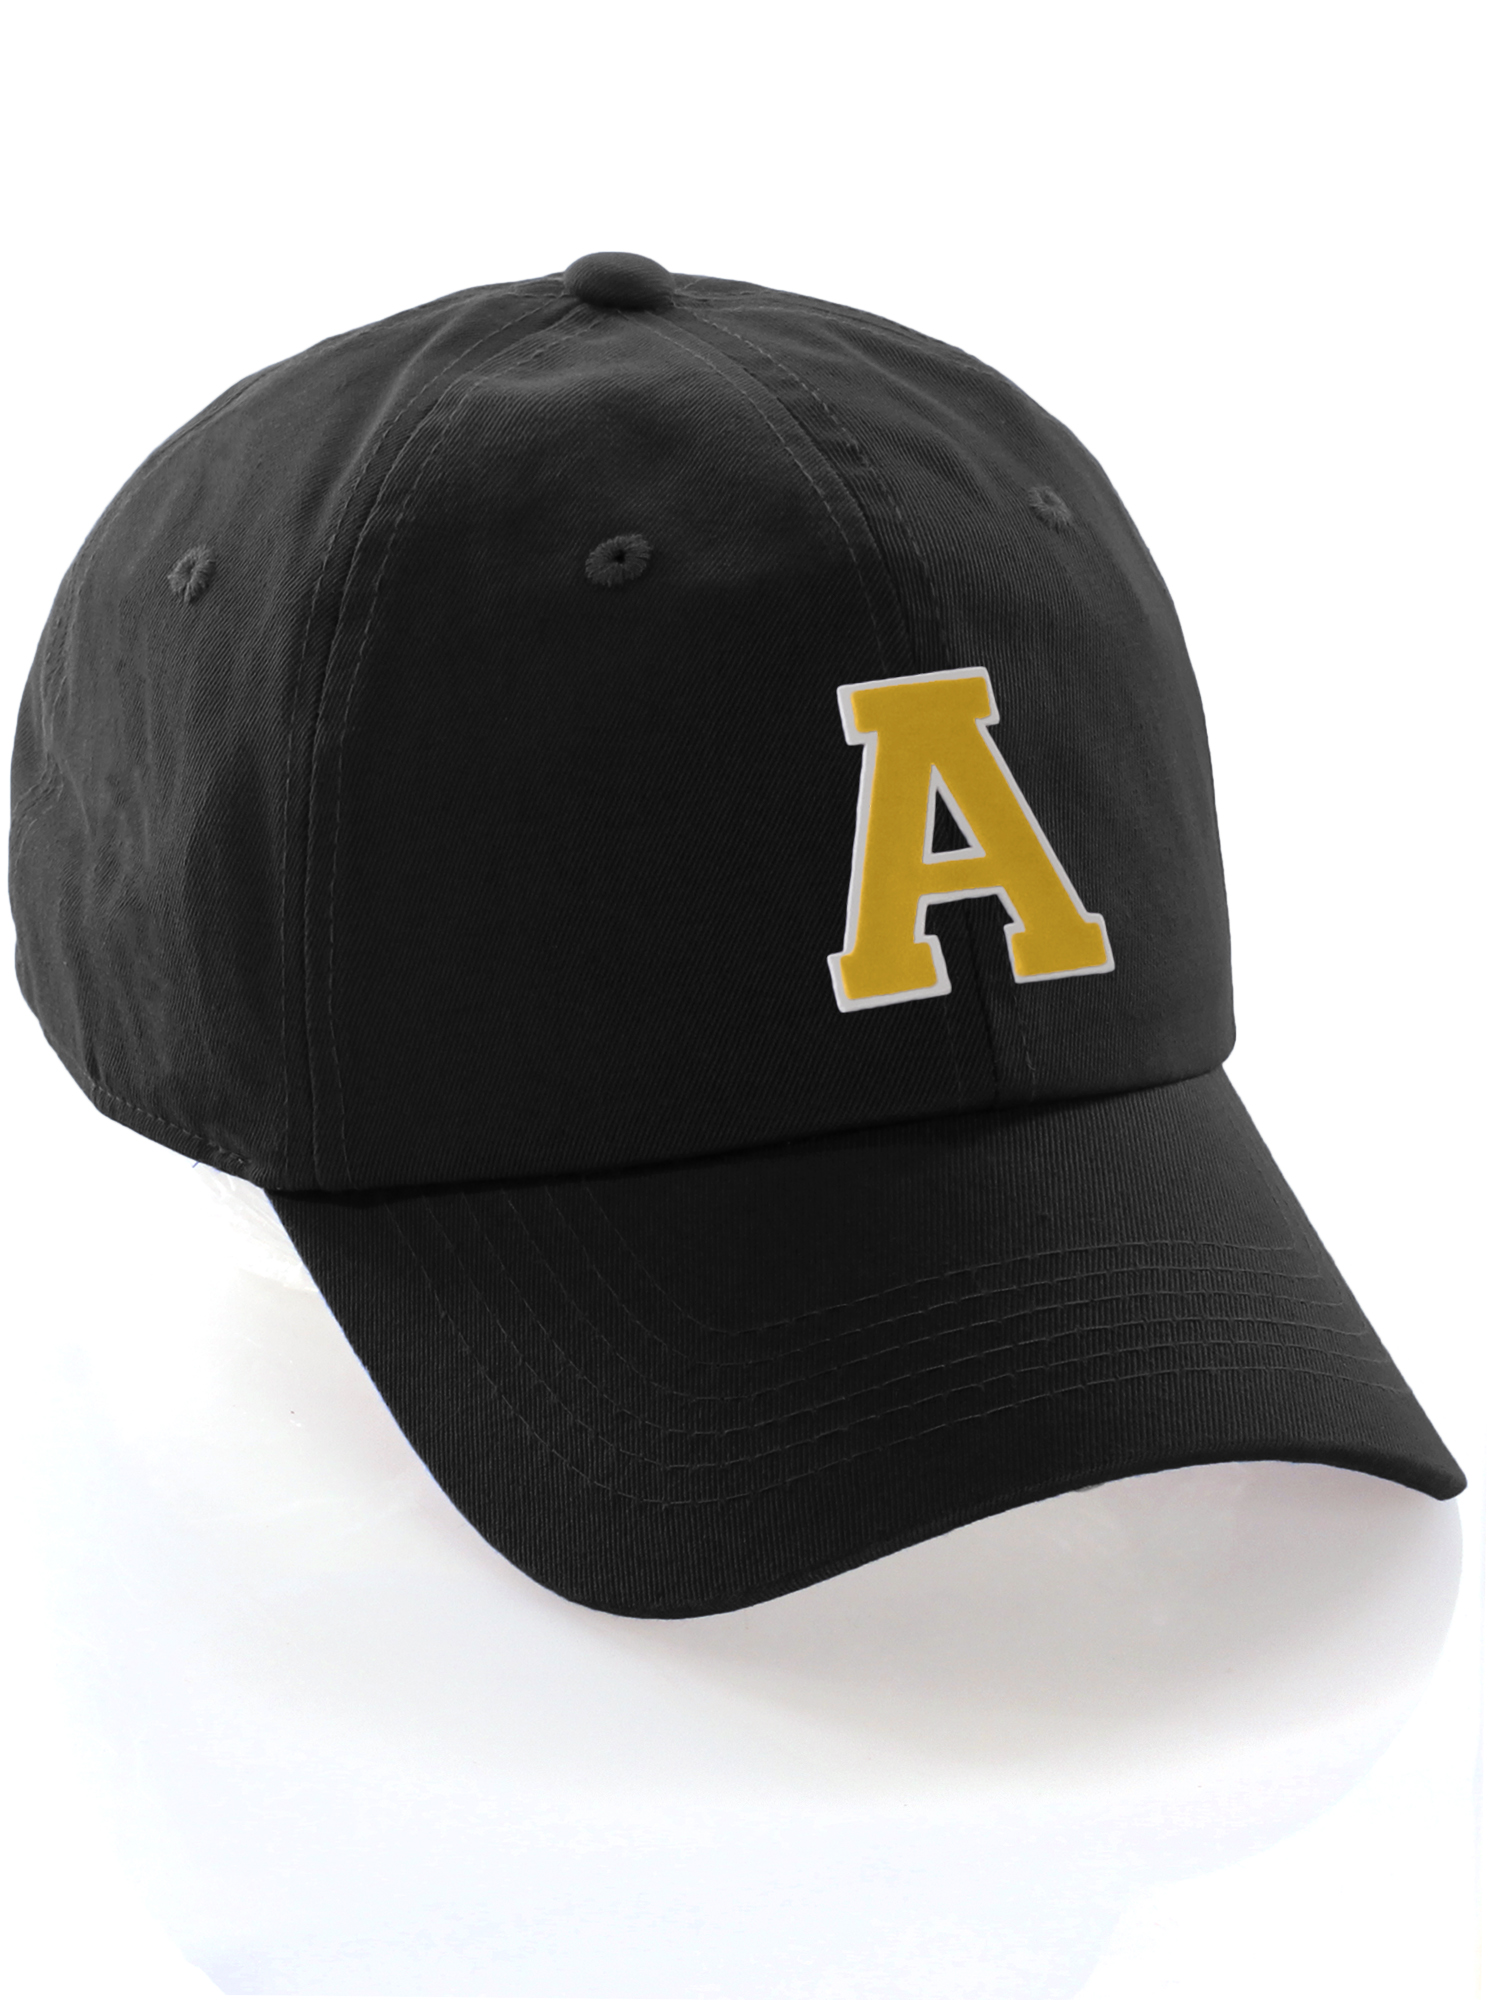 65ef3d9b72cc6 Custom Dad Hat A-Z Initial Letters Classic Baseball Cap - Black Hat with  White Gold Letter A